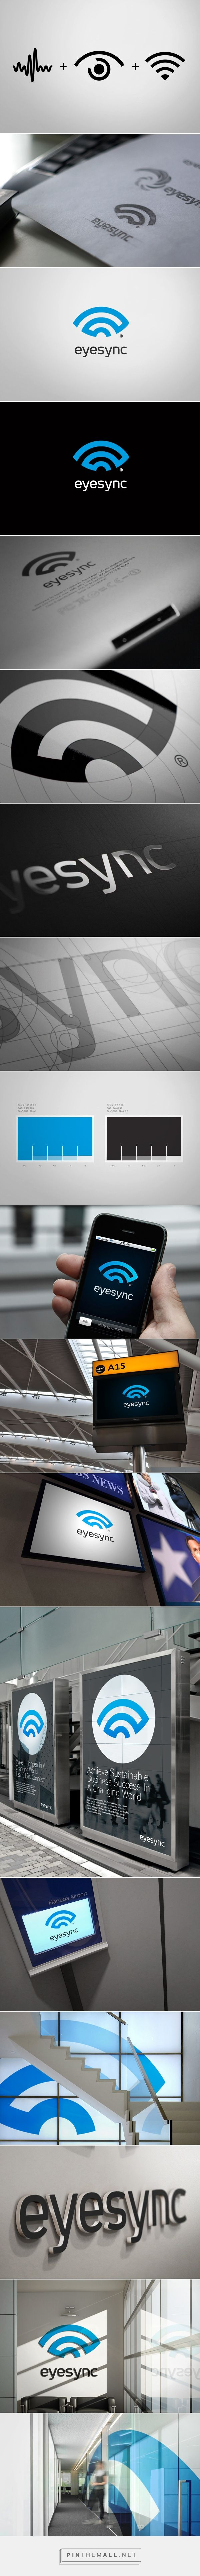 EyeSync Branding on Behance - created via https://pinthemall.net